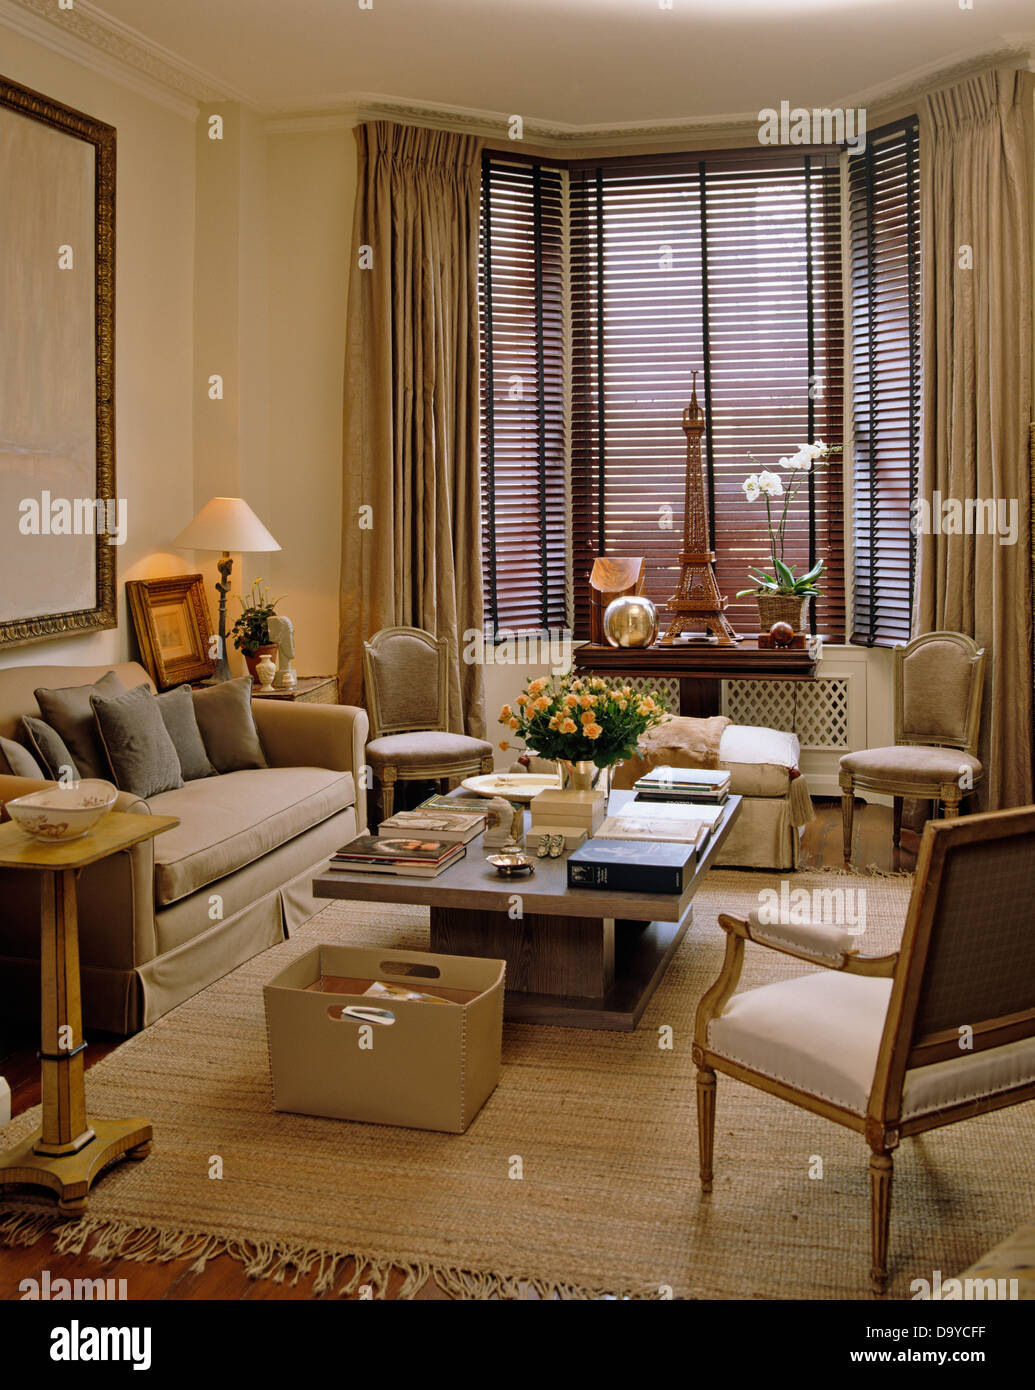 Beige sofa and leather storage box beside coffee table in living room with beige drapes and wooden Venetian blind on window & Beige sofa and leather storage box beside coffee table in living ...